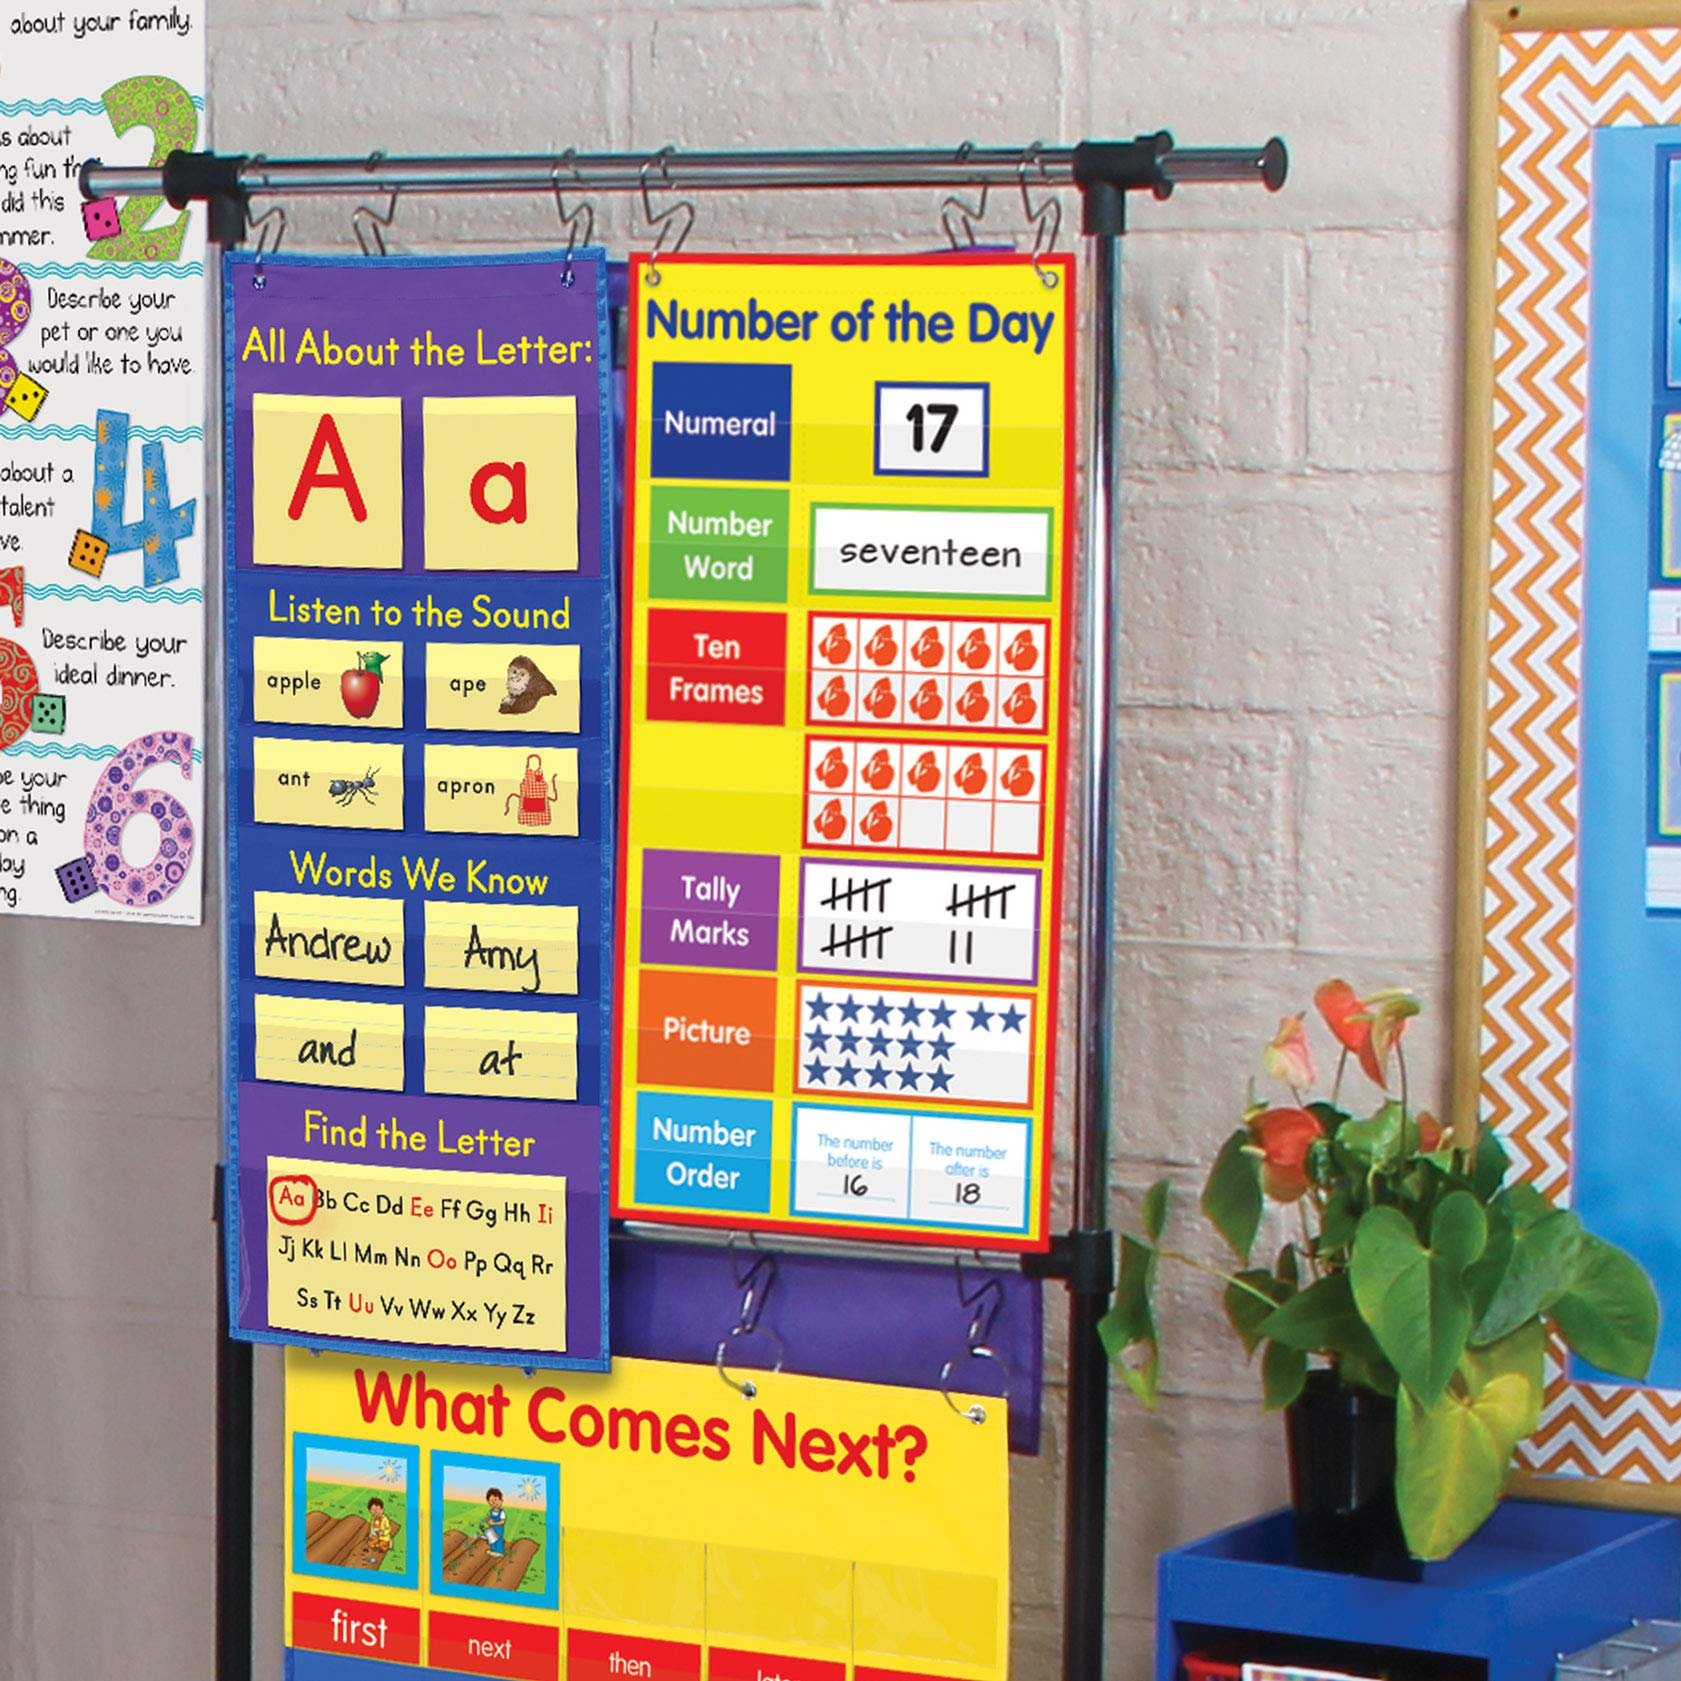 Really Good Stuff All About Letters Pocket Chart - Get Students Involved in Learning The Alphabet, Letter Sounds and Reading Basics - Grommets and Magnetic Strip for Easy Hanging, 14'' x 37''